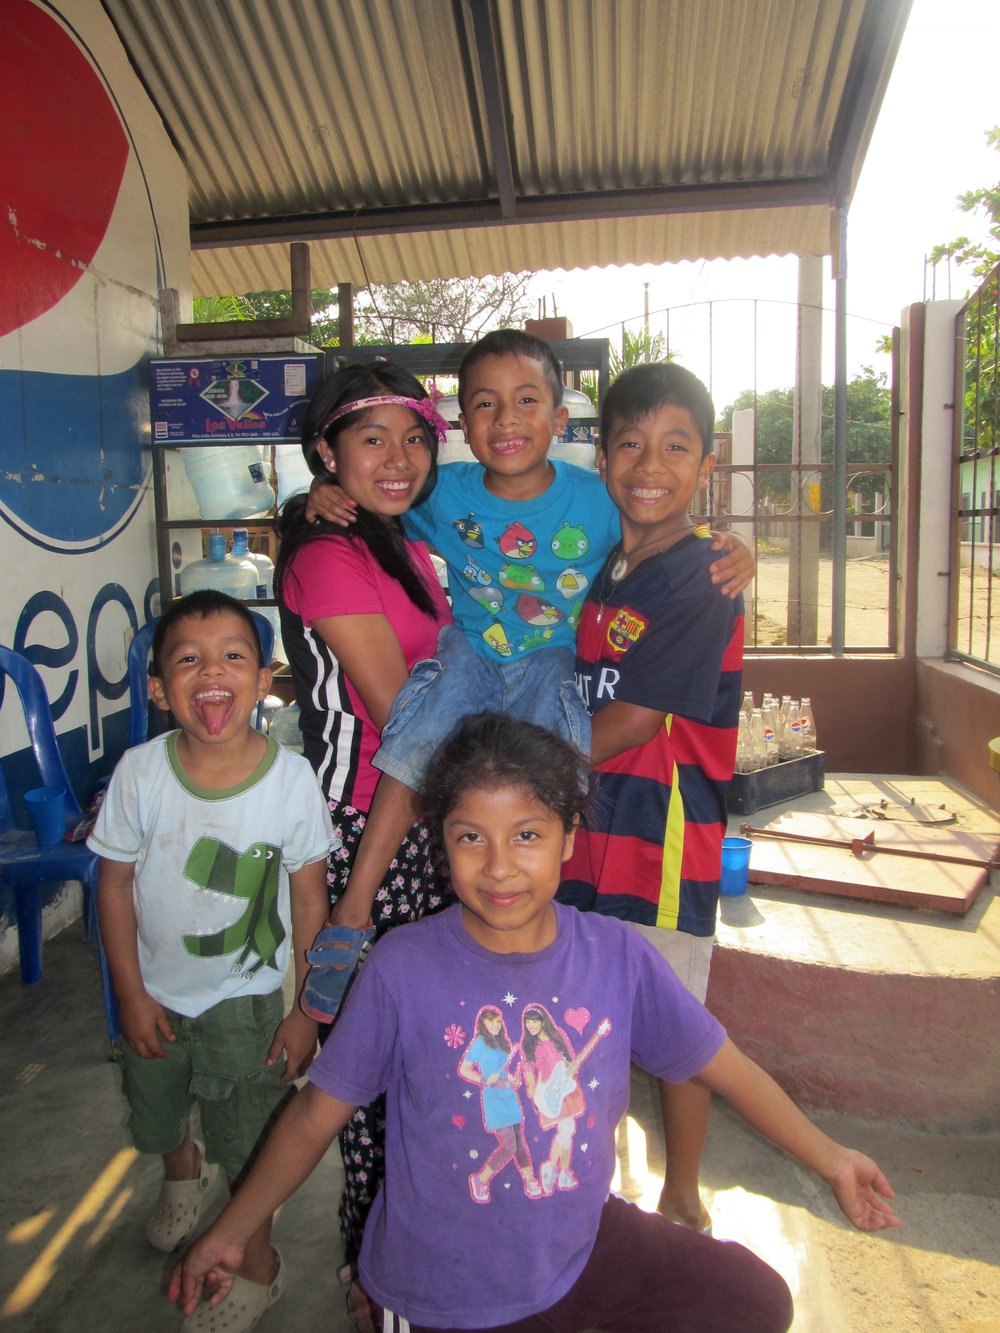 Herndando (upper right) with his three siblings and a friend (white and green dinosaur shirt)